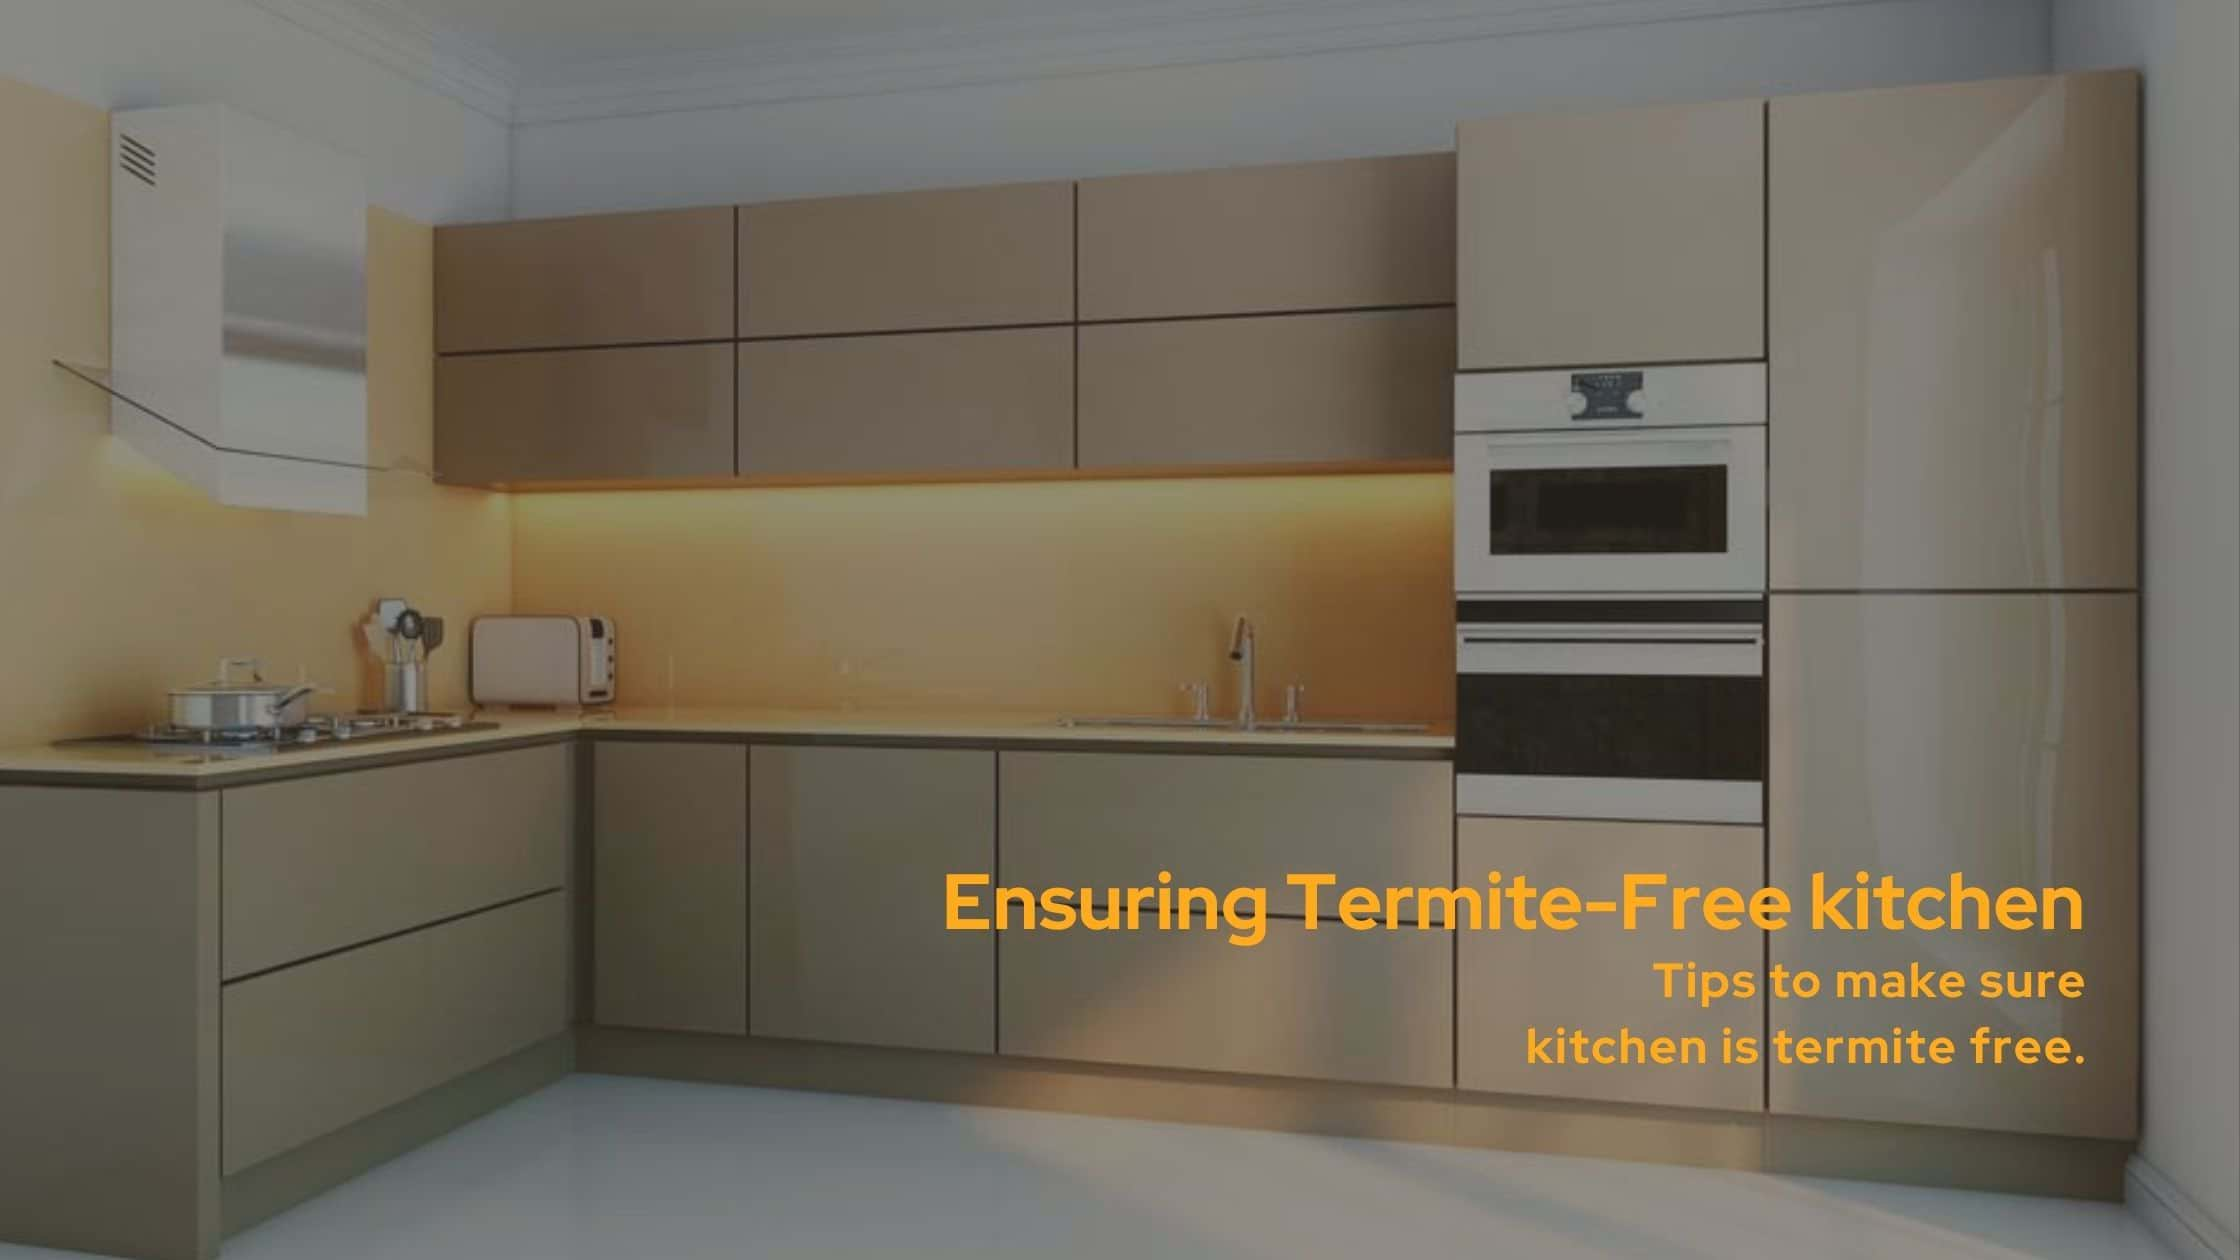 Tips to make sure the kitchen is Termite-Free | Termite ...